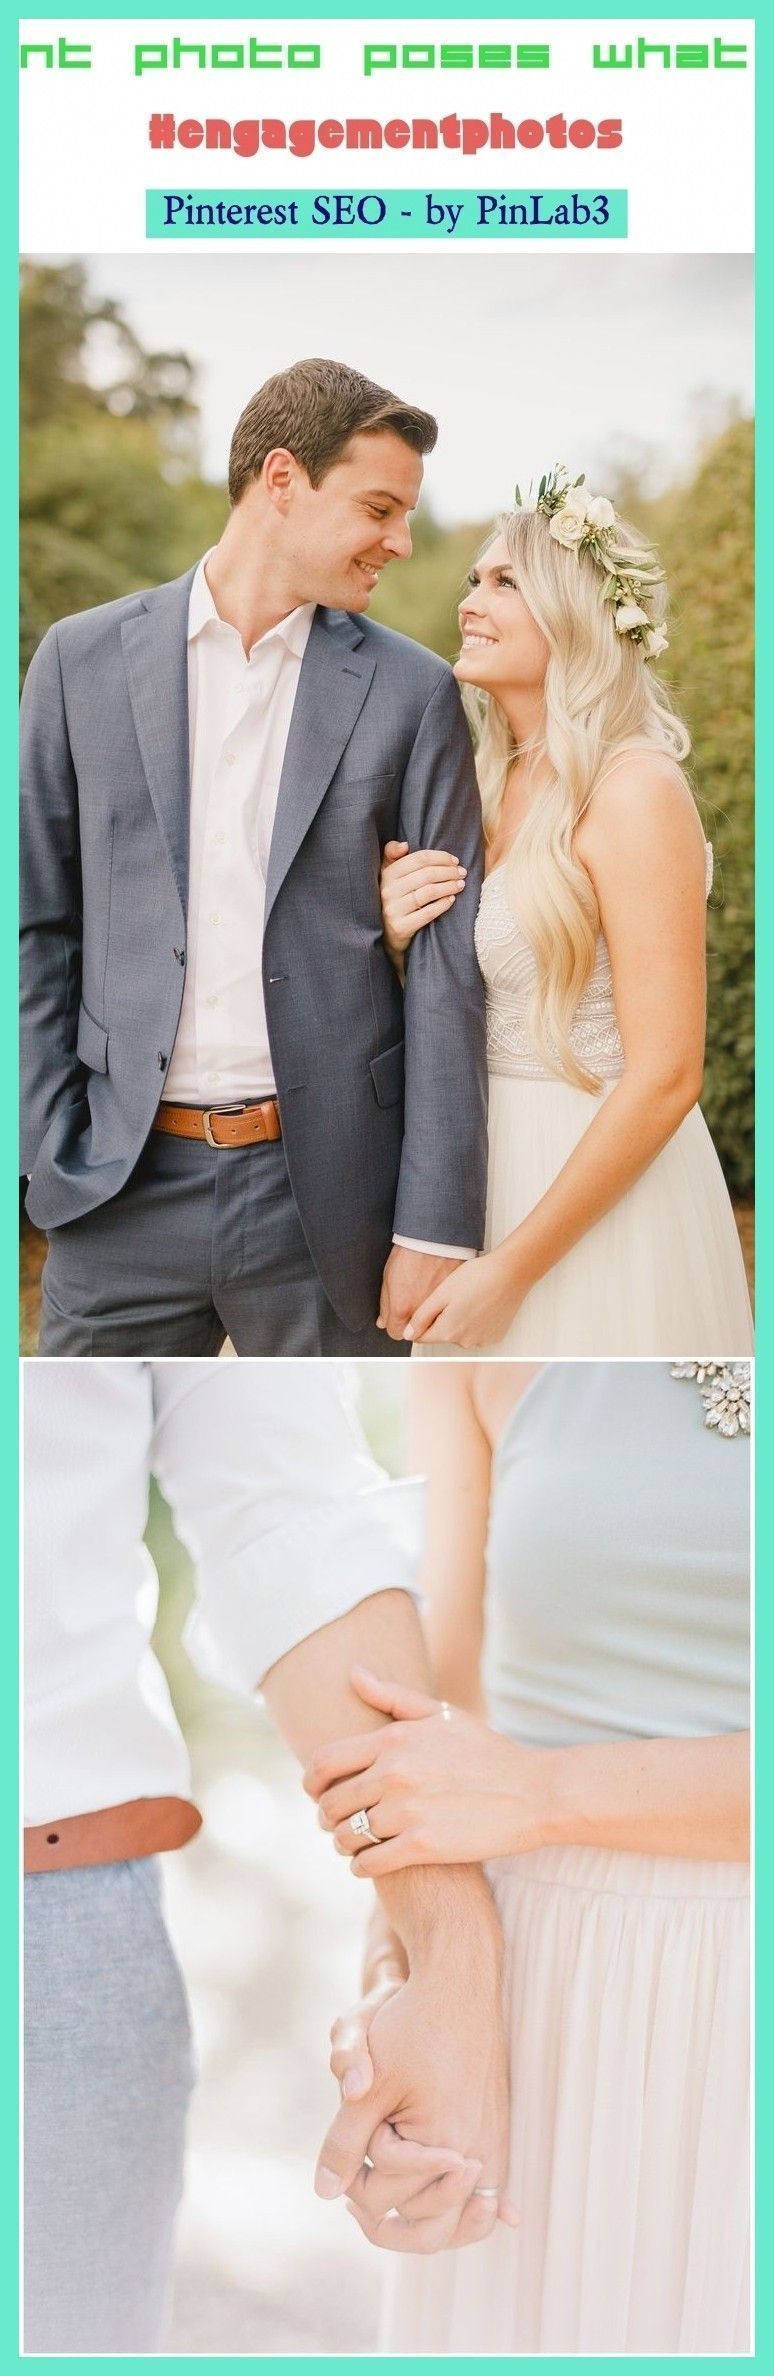 Engagement photo poses what to wear #engagement #photo #poses #verlobungsfoto #s... -  Engagement photo poses what to wear #engagement #photo #poses #verlobungsfoto #s…,    - #Engagement #EngagementPhotosclassy #EngagementPhotosindian #EngagementPhotoswoods #formalEngagementPhotos #naturalEngagementPhotos #photo #plussizeEngagementPhotos #Poses #rusticEngagementPhotos #verlobungsfoto #wear #whattowearforEngagementPhotos